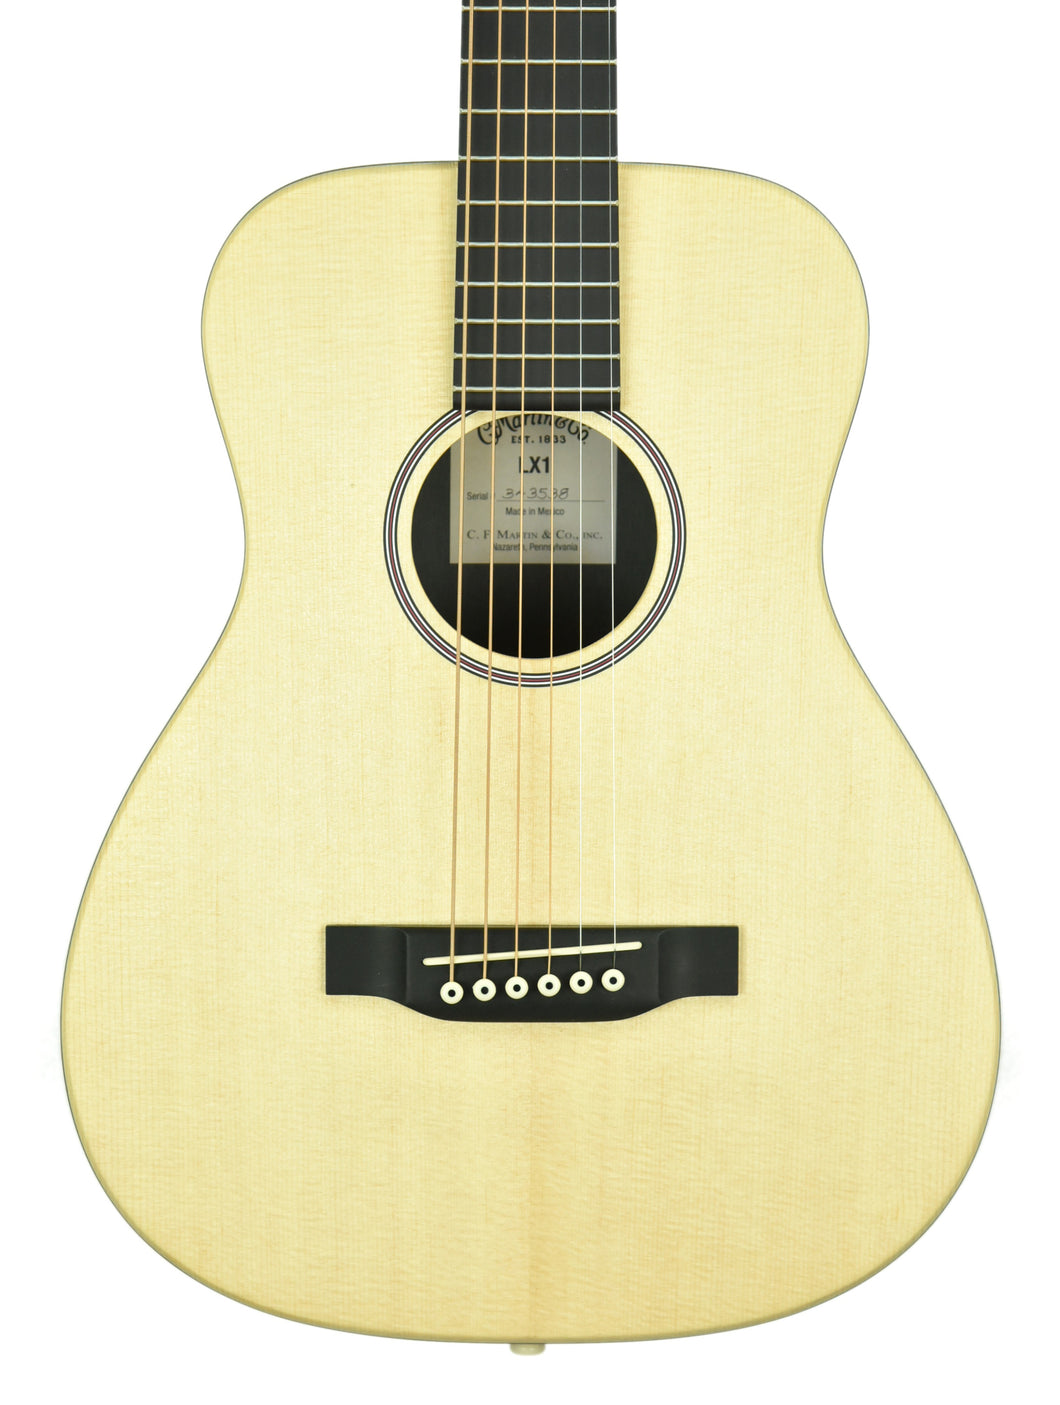 Martin LX1 Little Martin Acoustic Guitar 343538